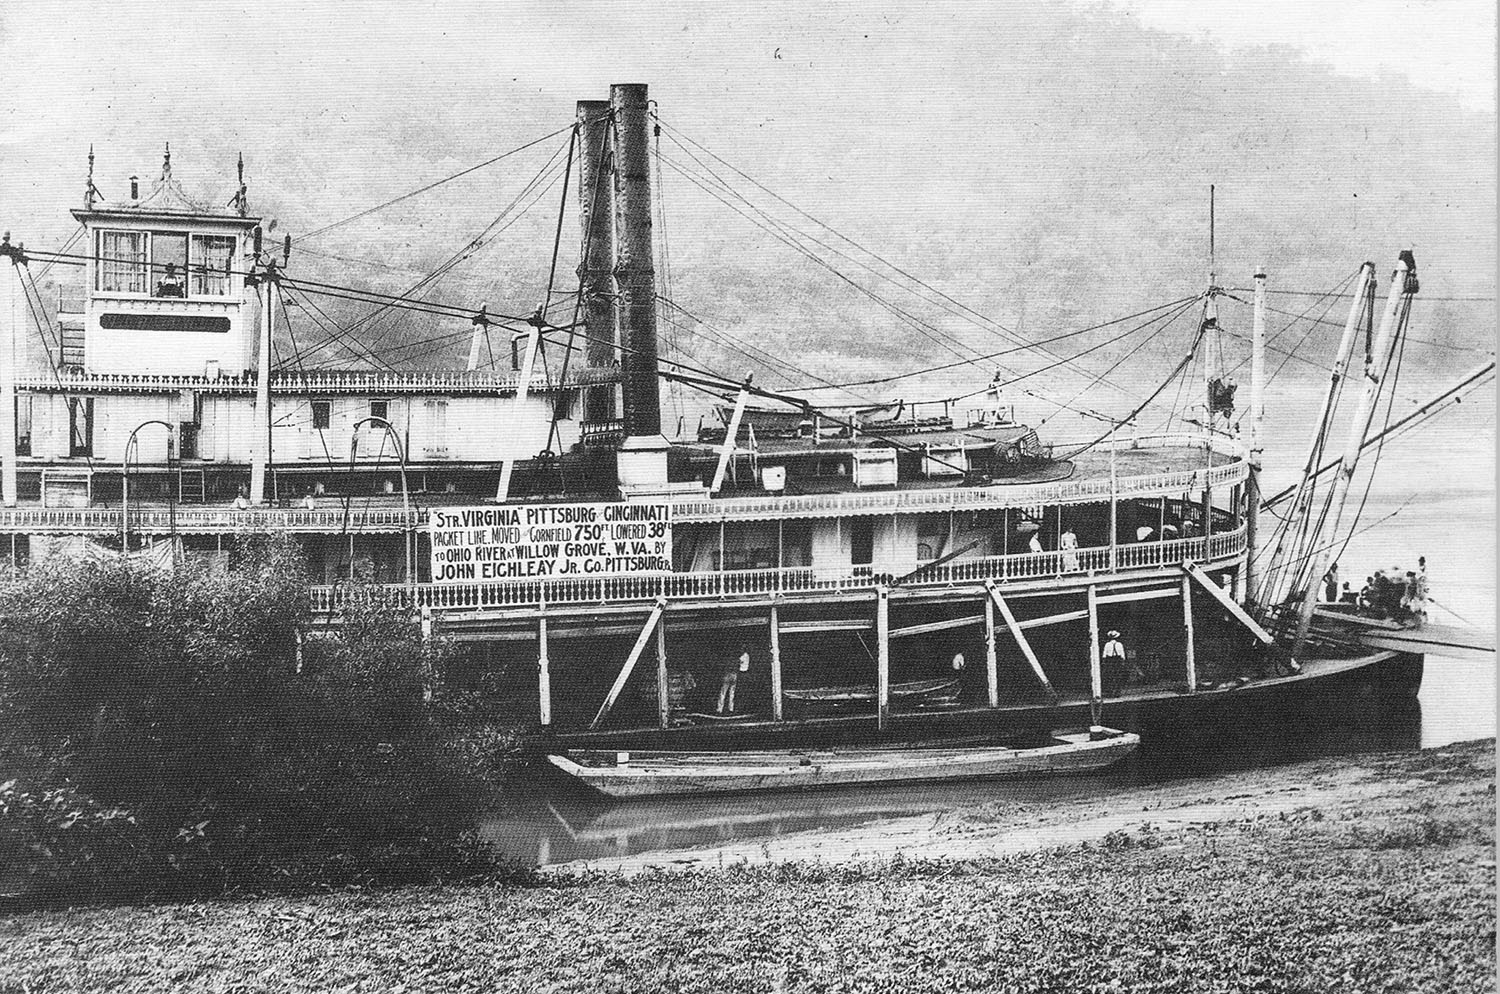 The Virginia after being refloated from the cornfield in June 1910. (Keith Norrington collection)